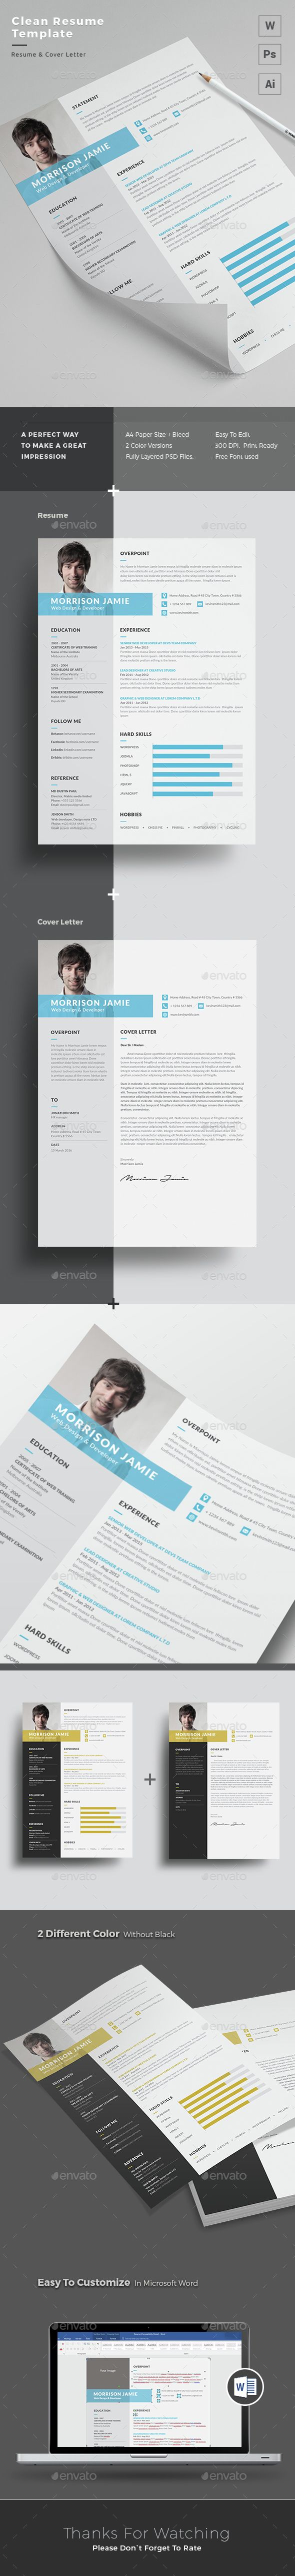 best images about design resumes simple resume